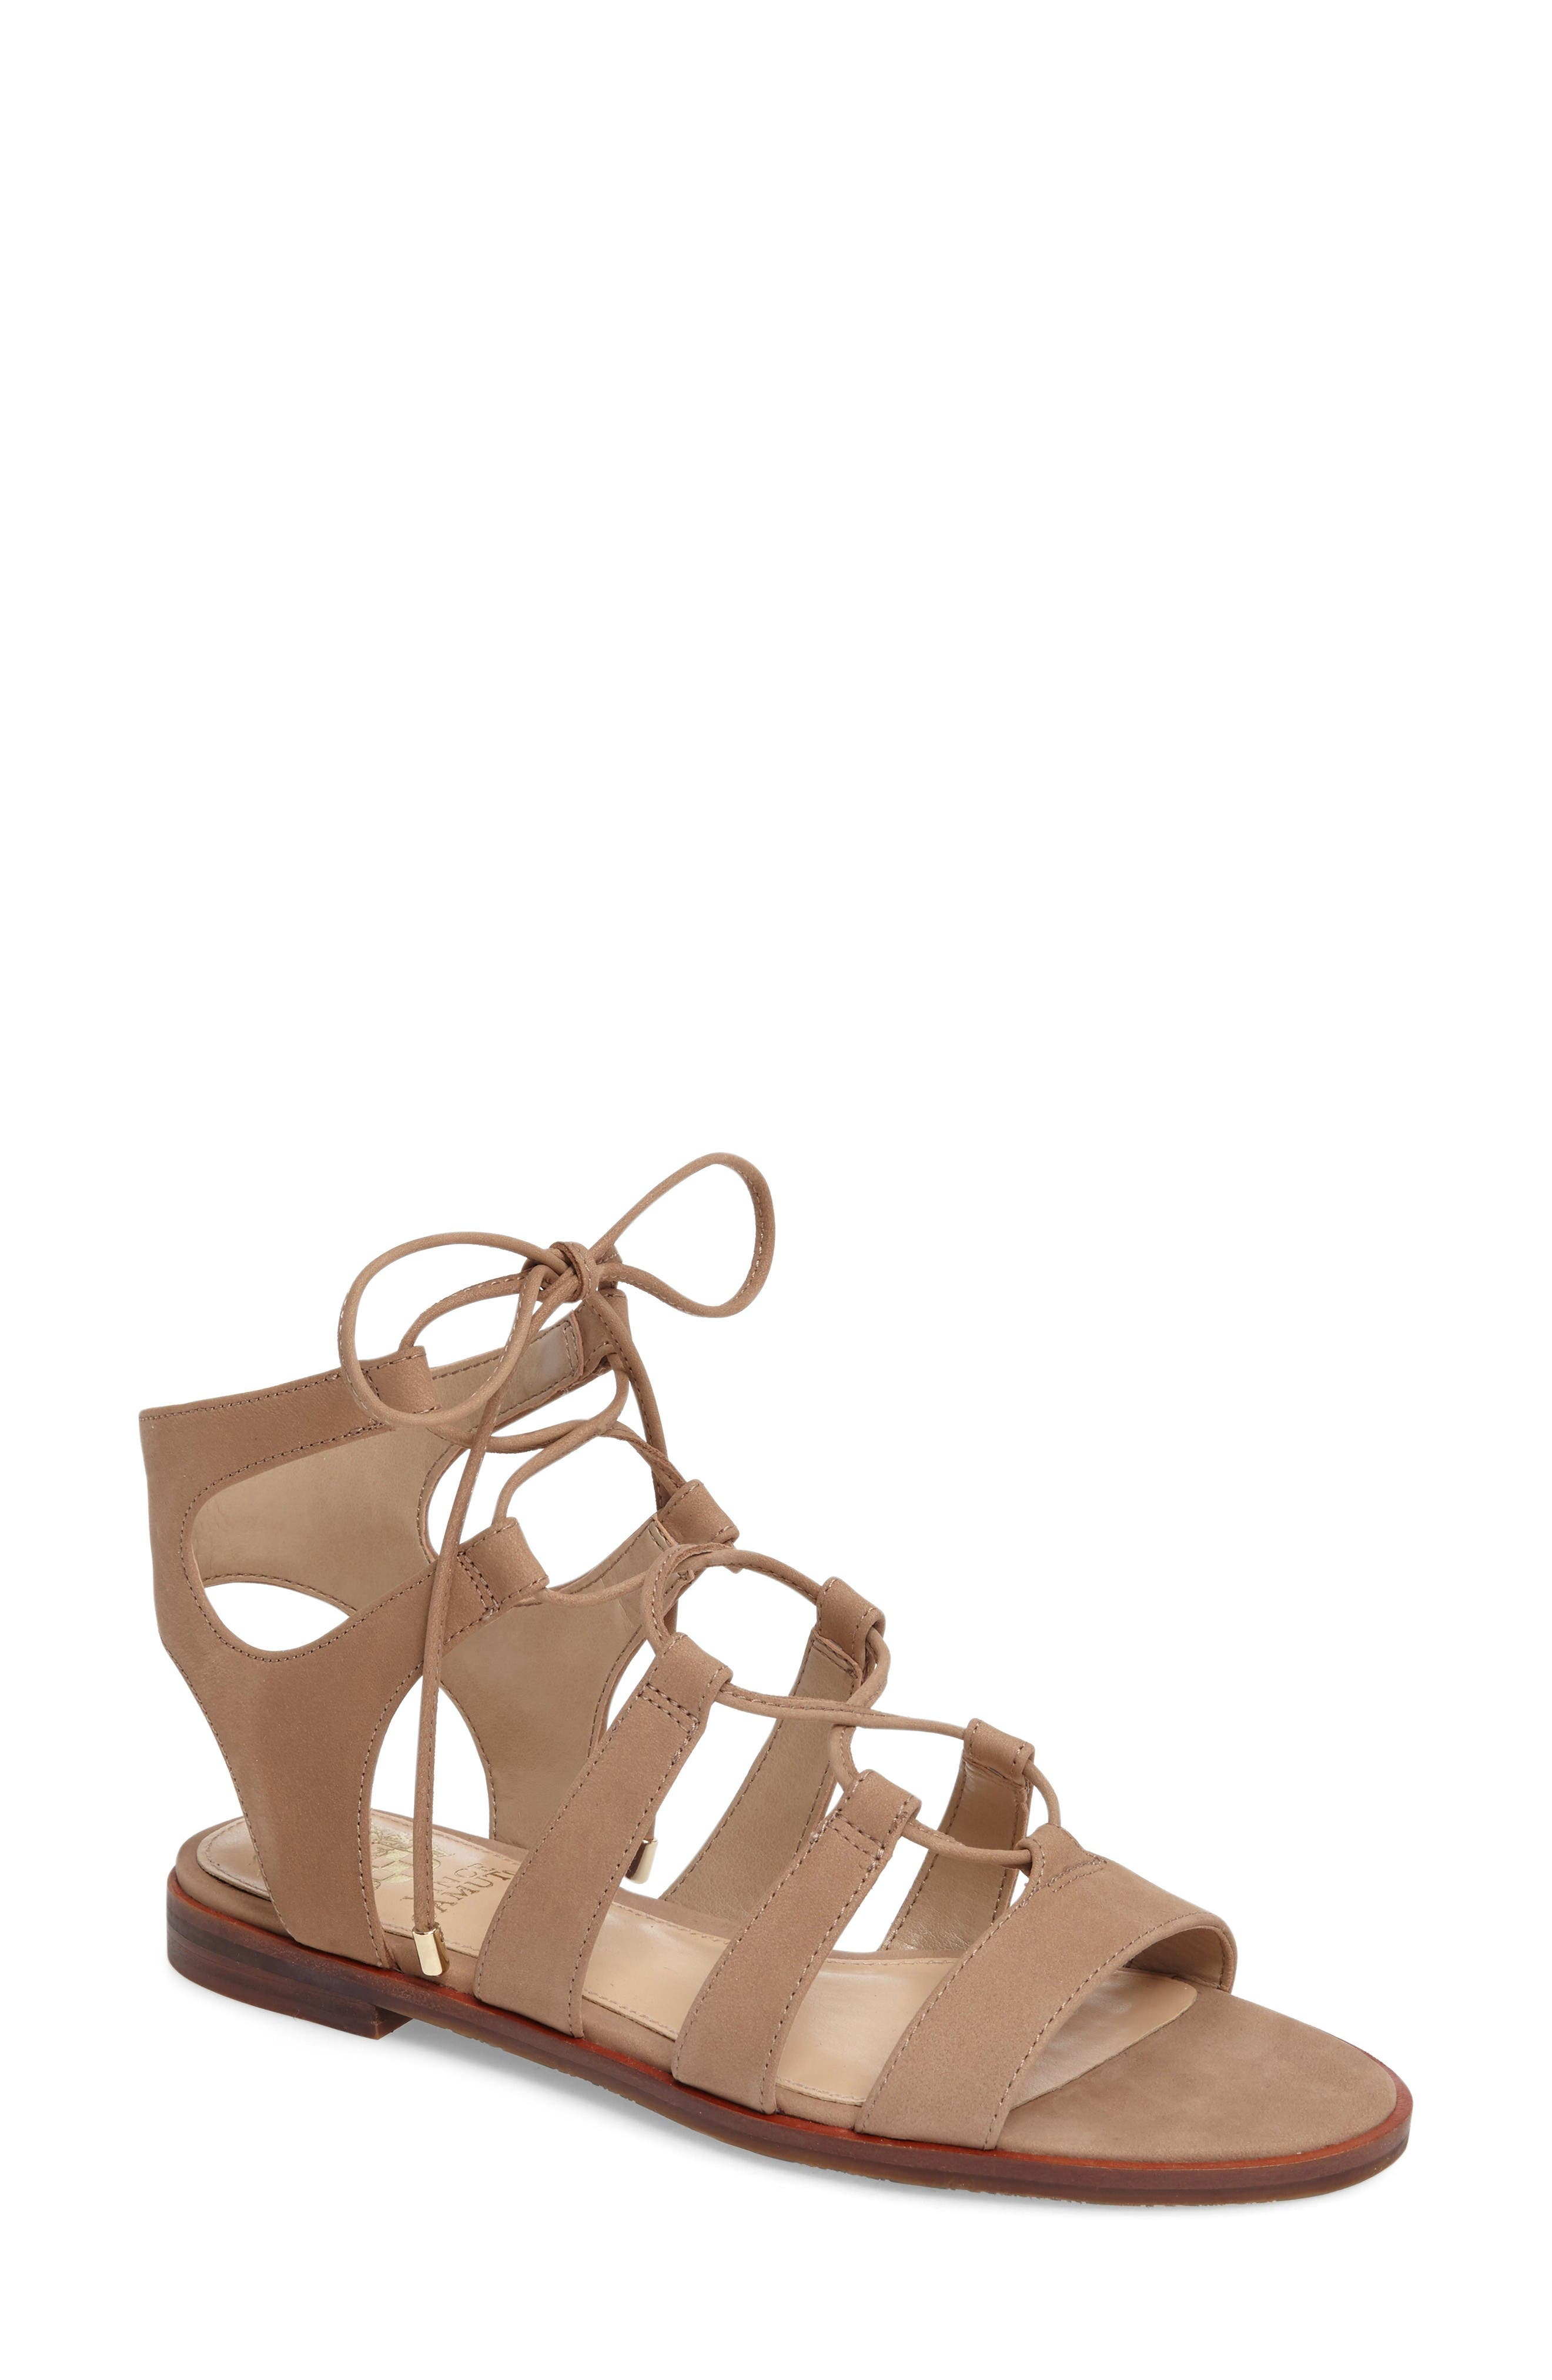 Alternate Image 1 Selected - Vince Camuto Tany Lace-Up Sandal (Women)